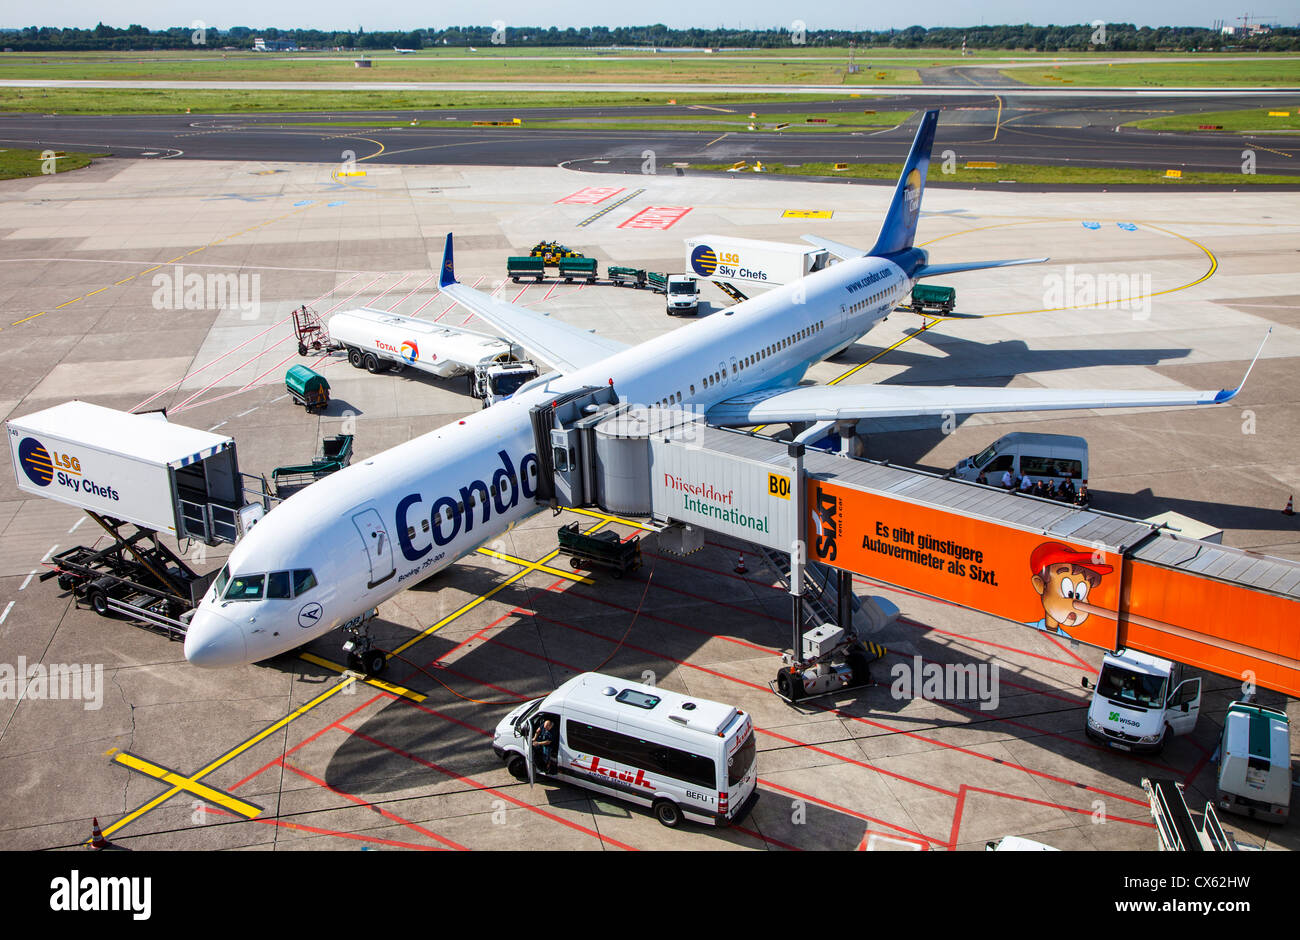 Ground handling of air planes at Düsseldorf International Airport. Germany, Europe. - Stock Image